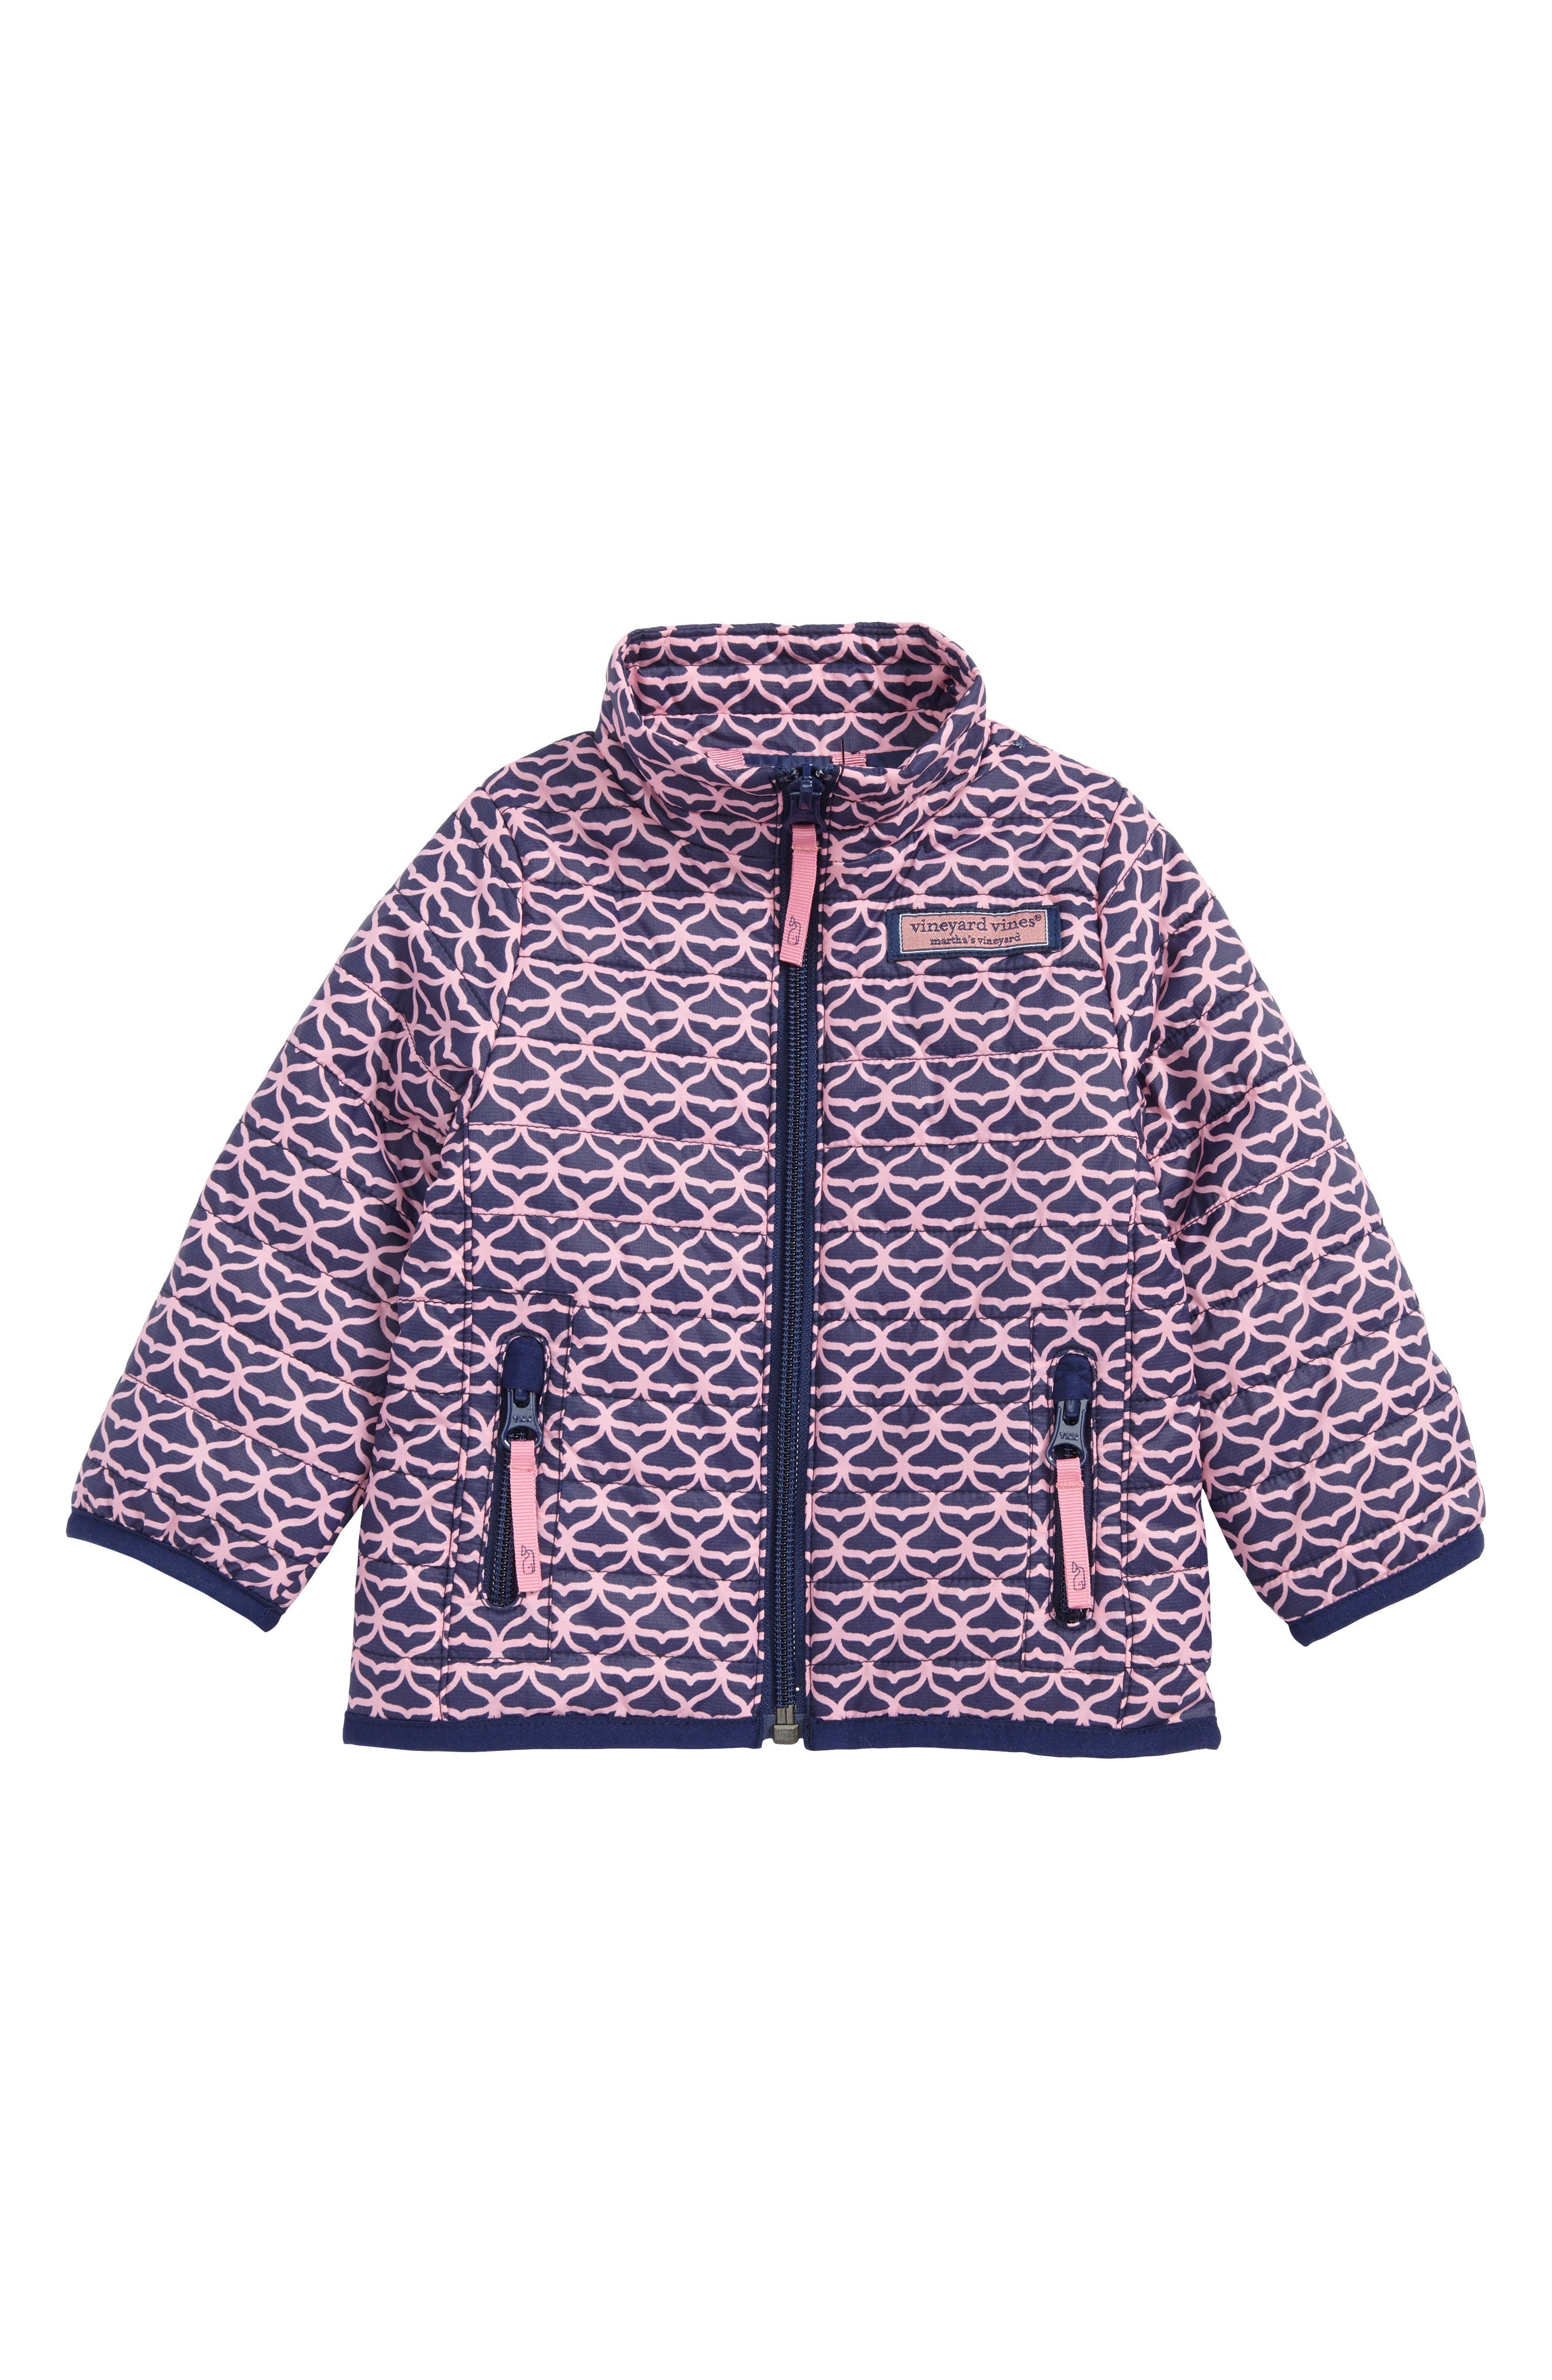 Whale Tail Mountain Weekend Quilted Jacket,                         Main,                         color,